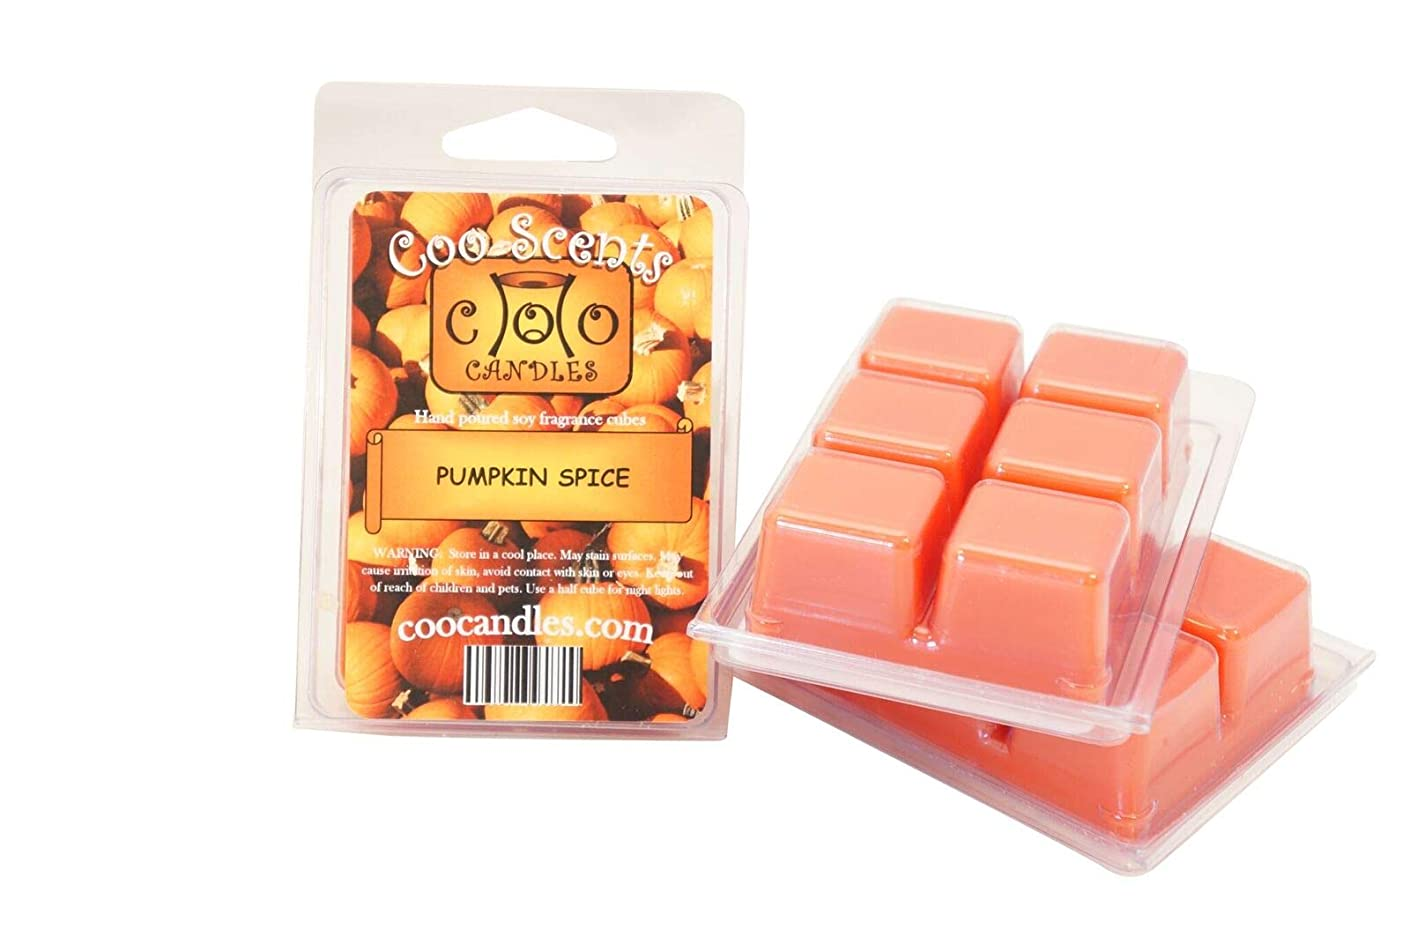 Coo Candles 3 Pack Soy Highly Scented Wickless Candle Bar Wax Melts - Pumpkin Spice